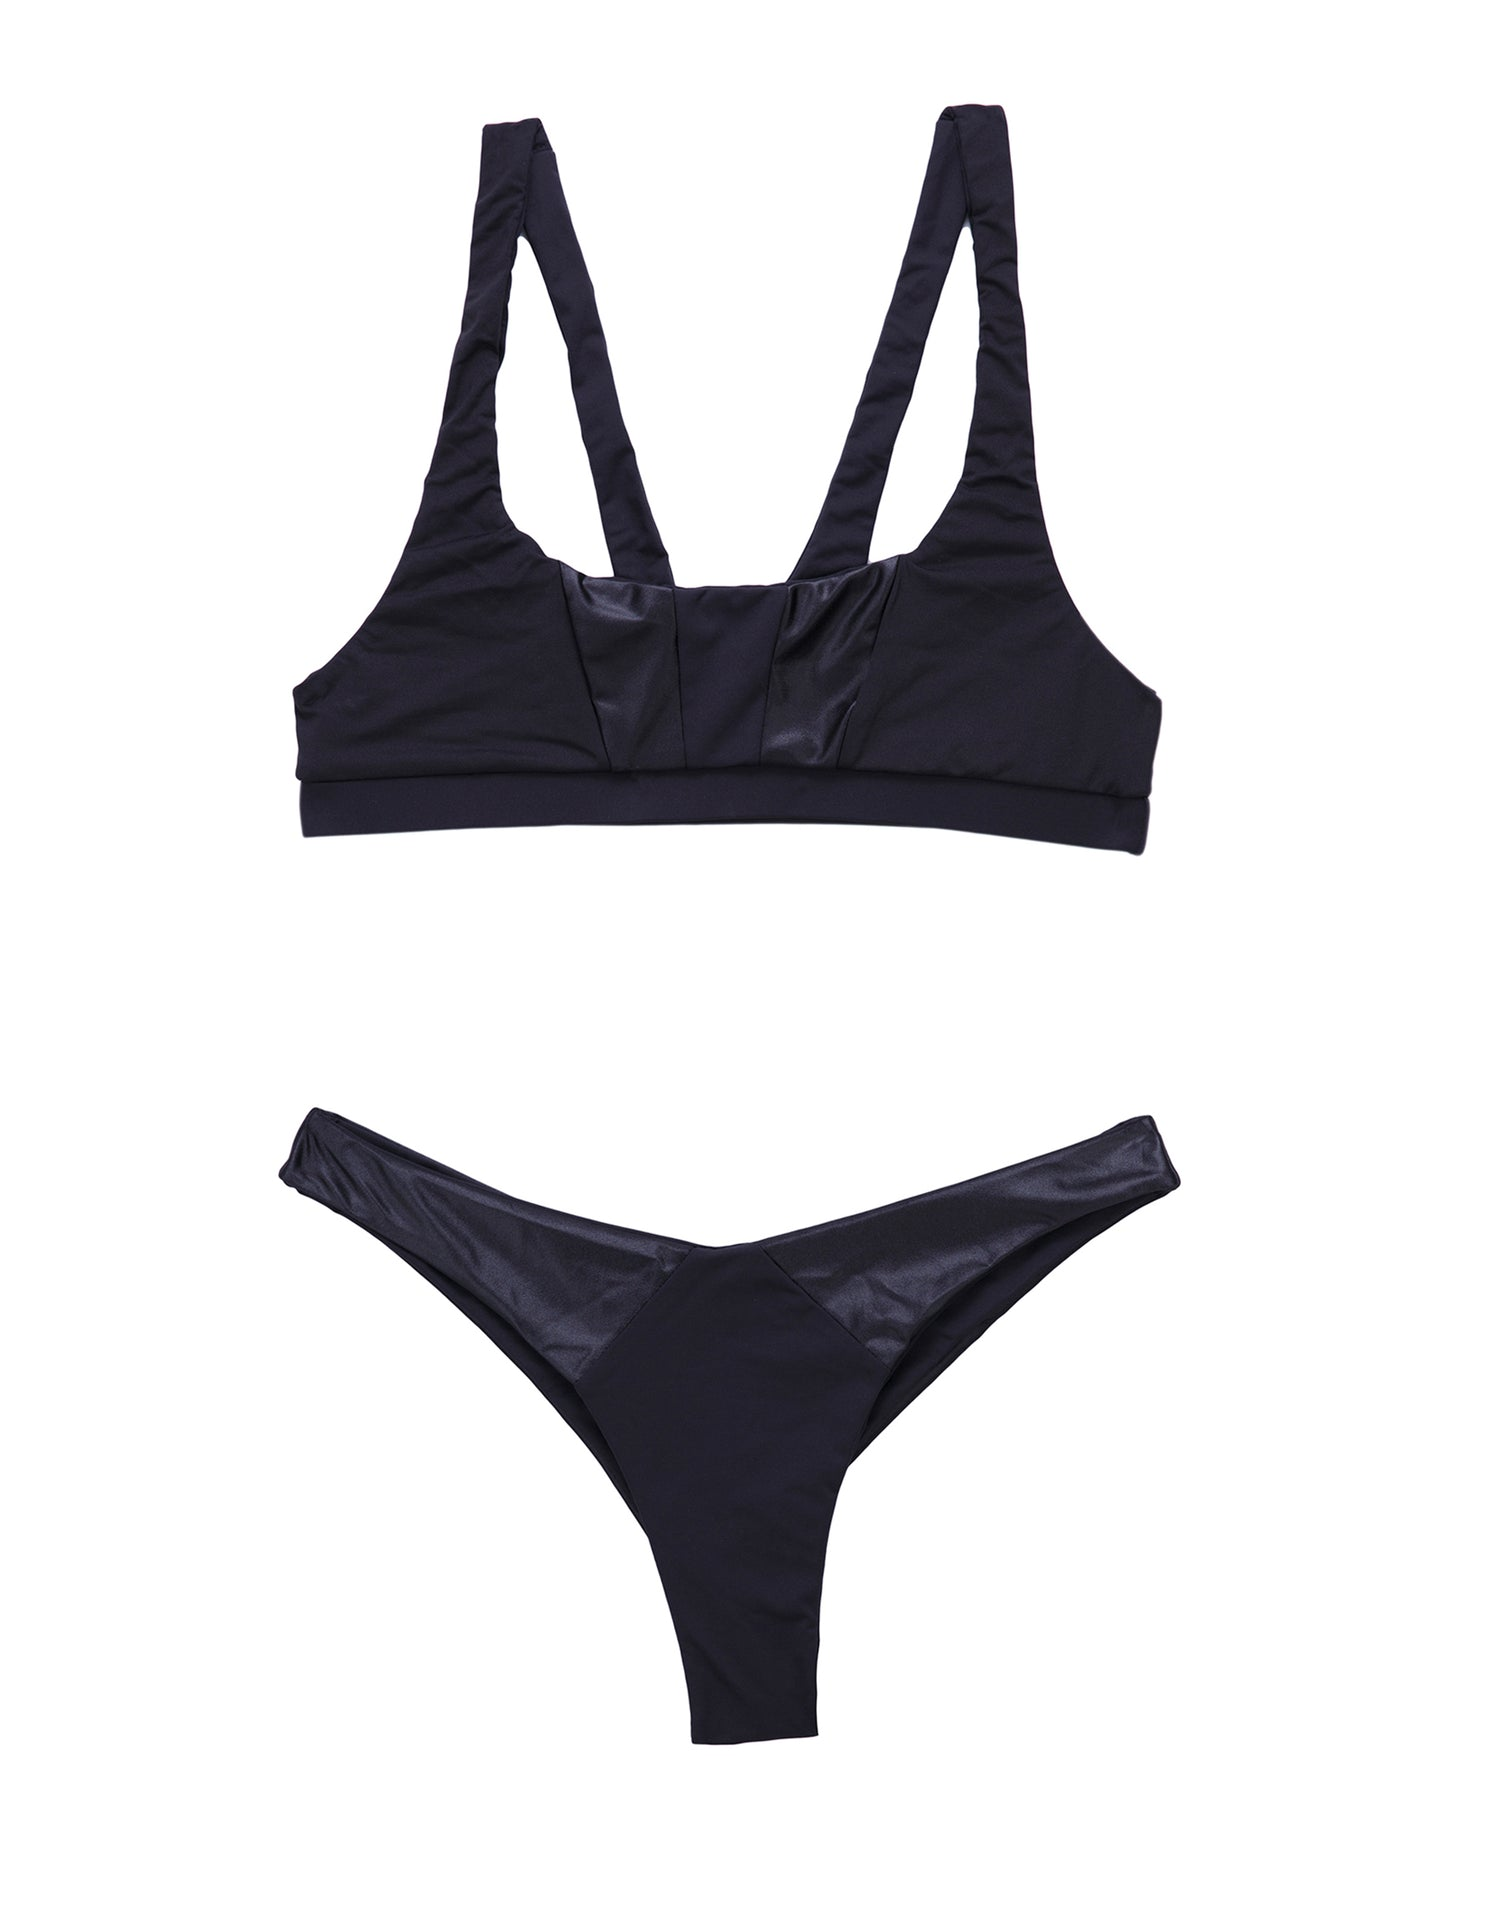 Sutton Bralette Bikini Top in Black - product view